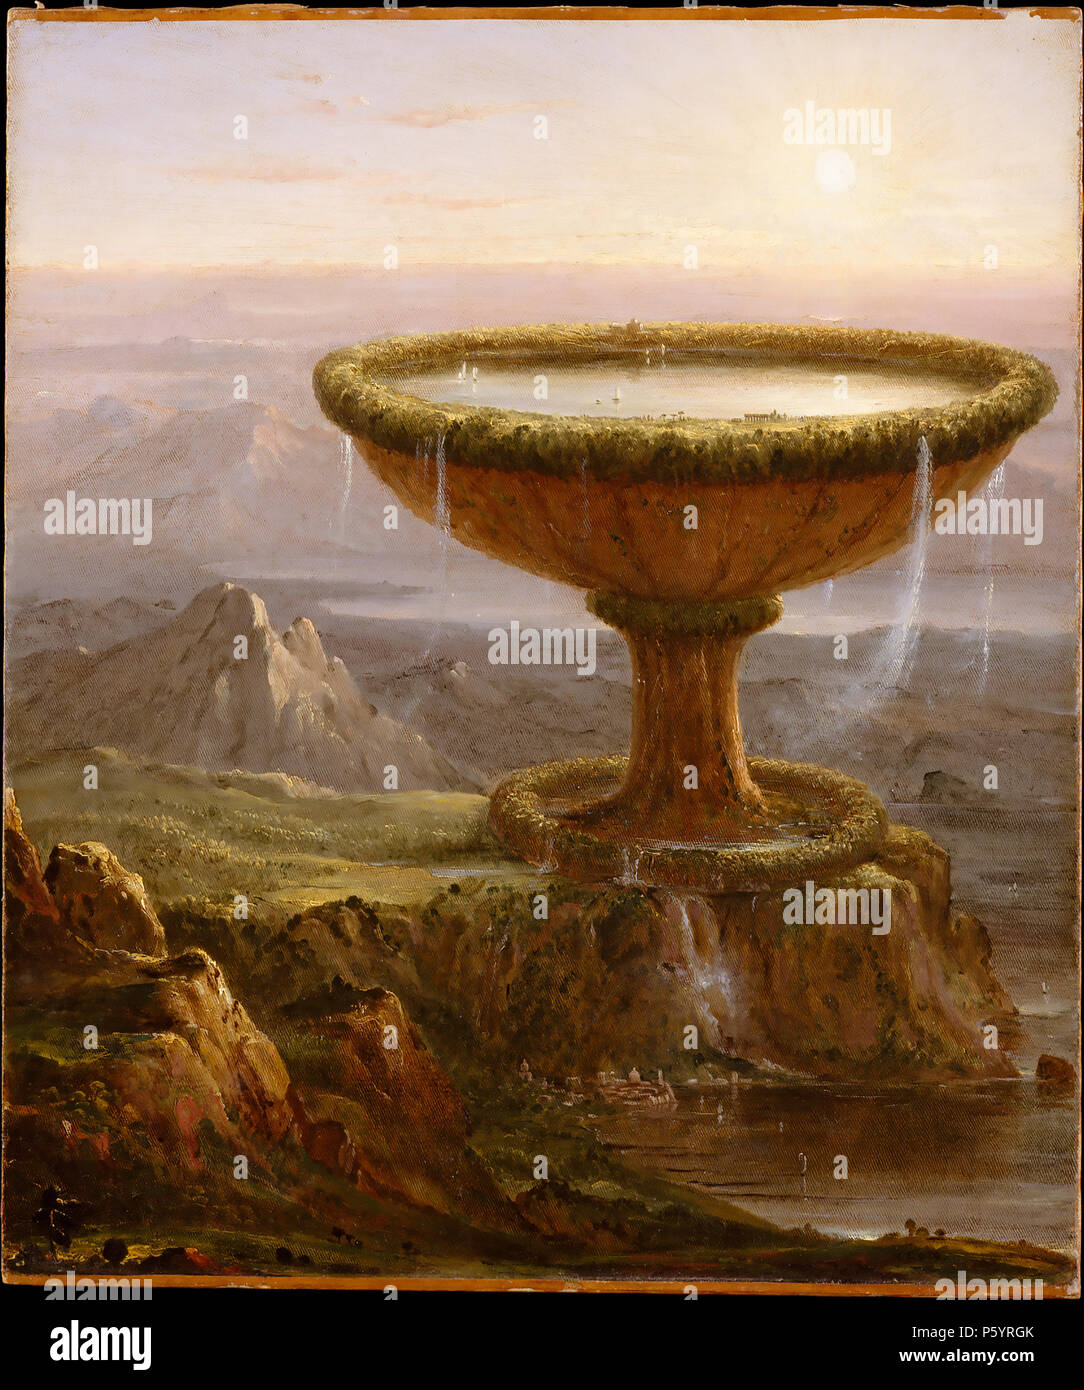 THOMAS COLE (1801-1848) English-born American painter. His 1833 painting The Titan's Goblet - Stock Image